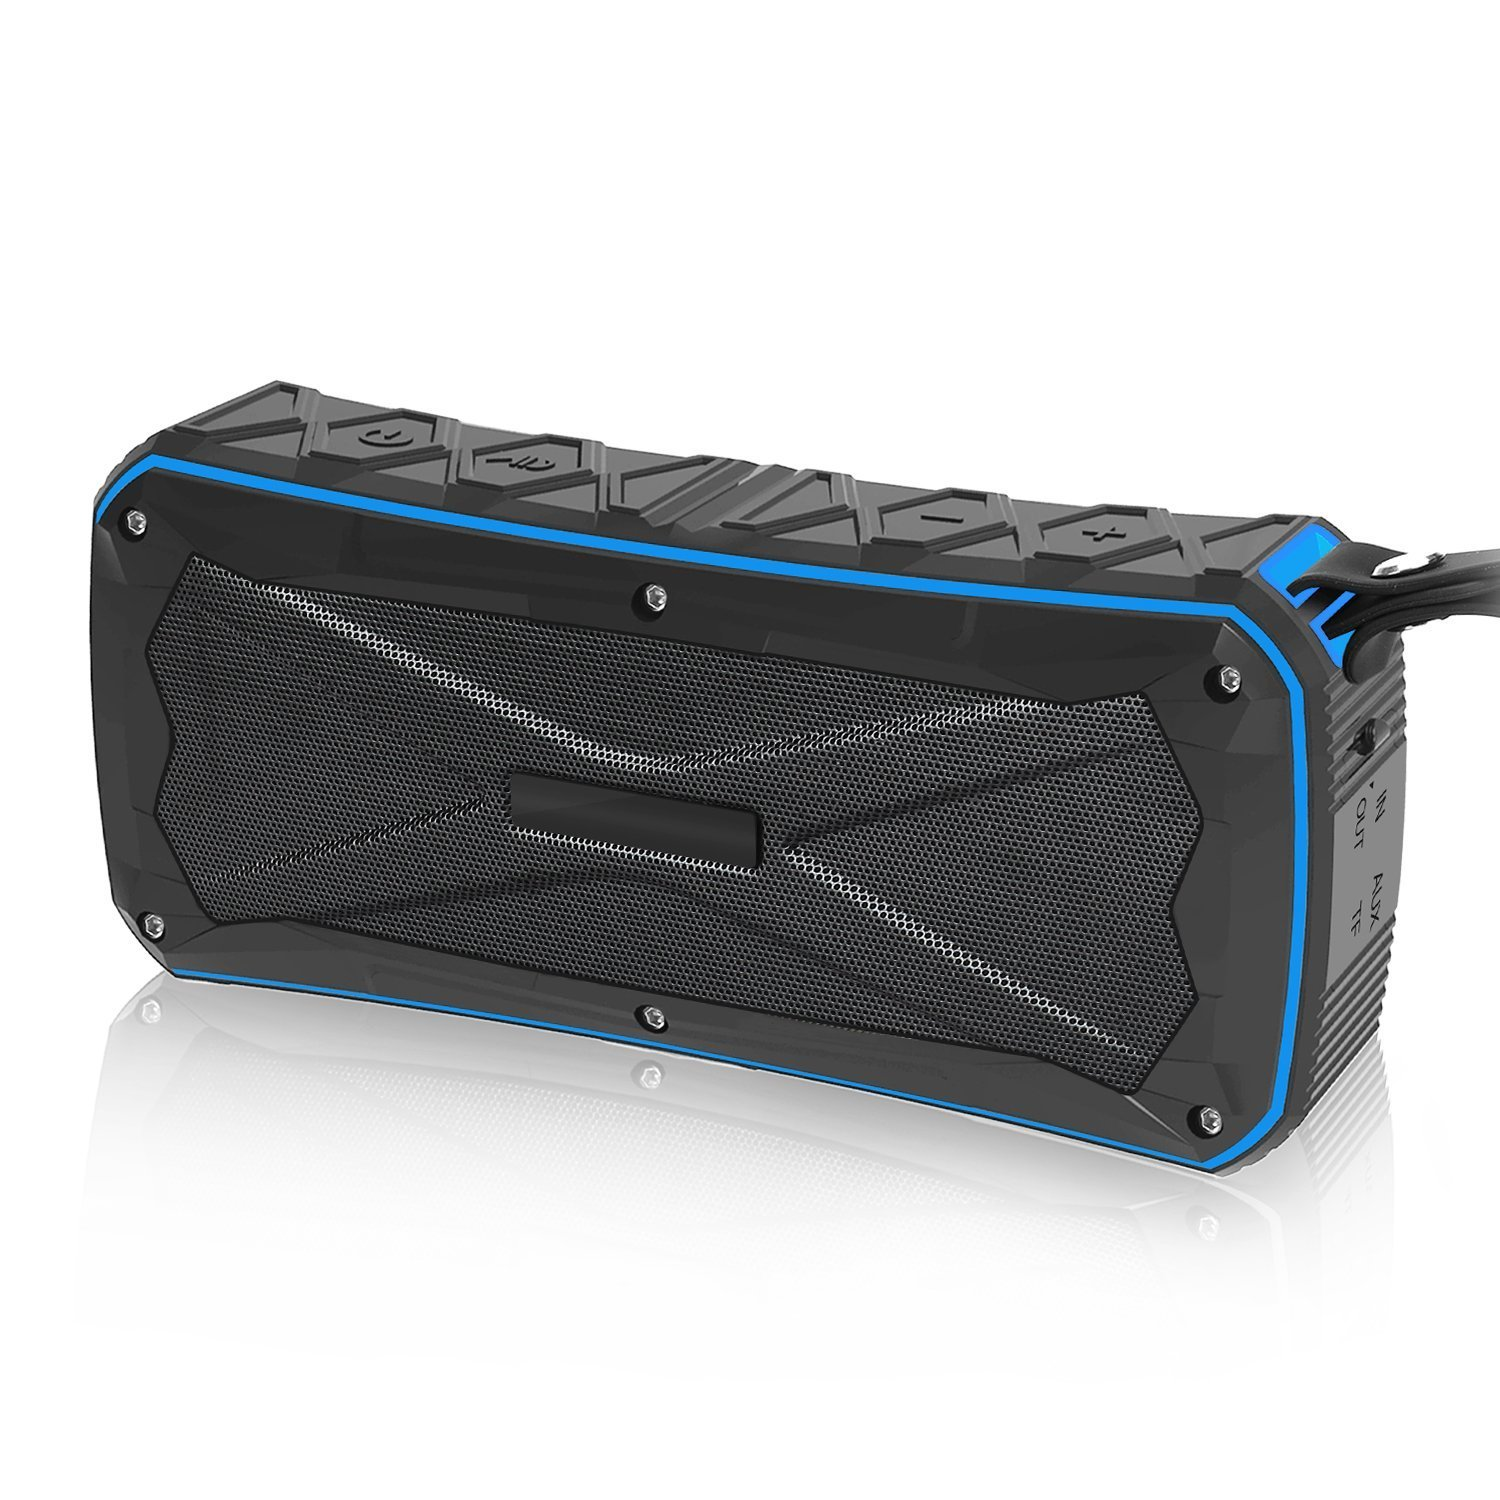 Bluetooth Speaker BINKBANG Outdoor Portable Speakers Wireless Waterproof Subwoofer Shockproof Stereo Soundbar Support TF Card 12H Playtime for Travel Bicycle Camping Hiking Running Yoga